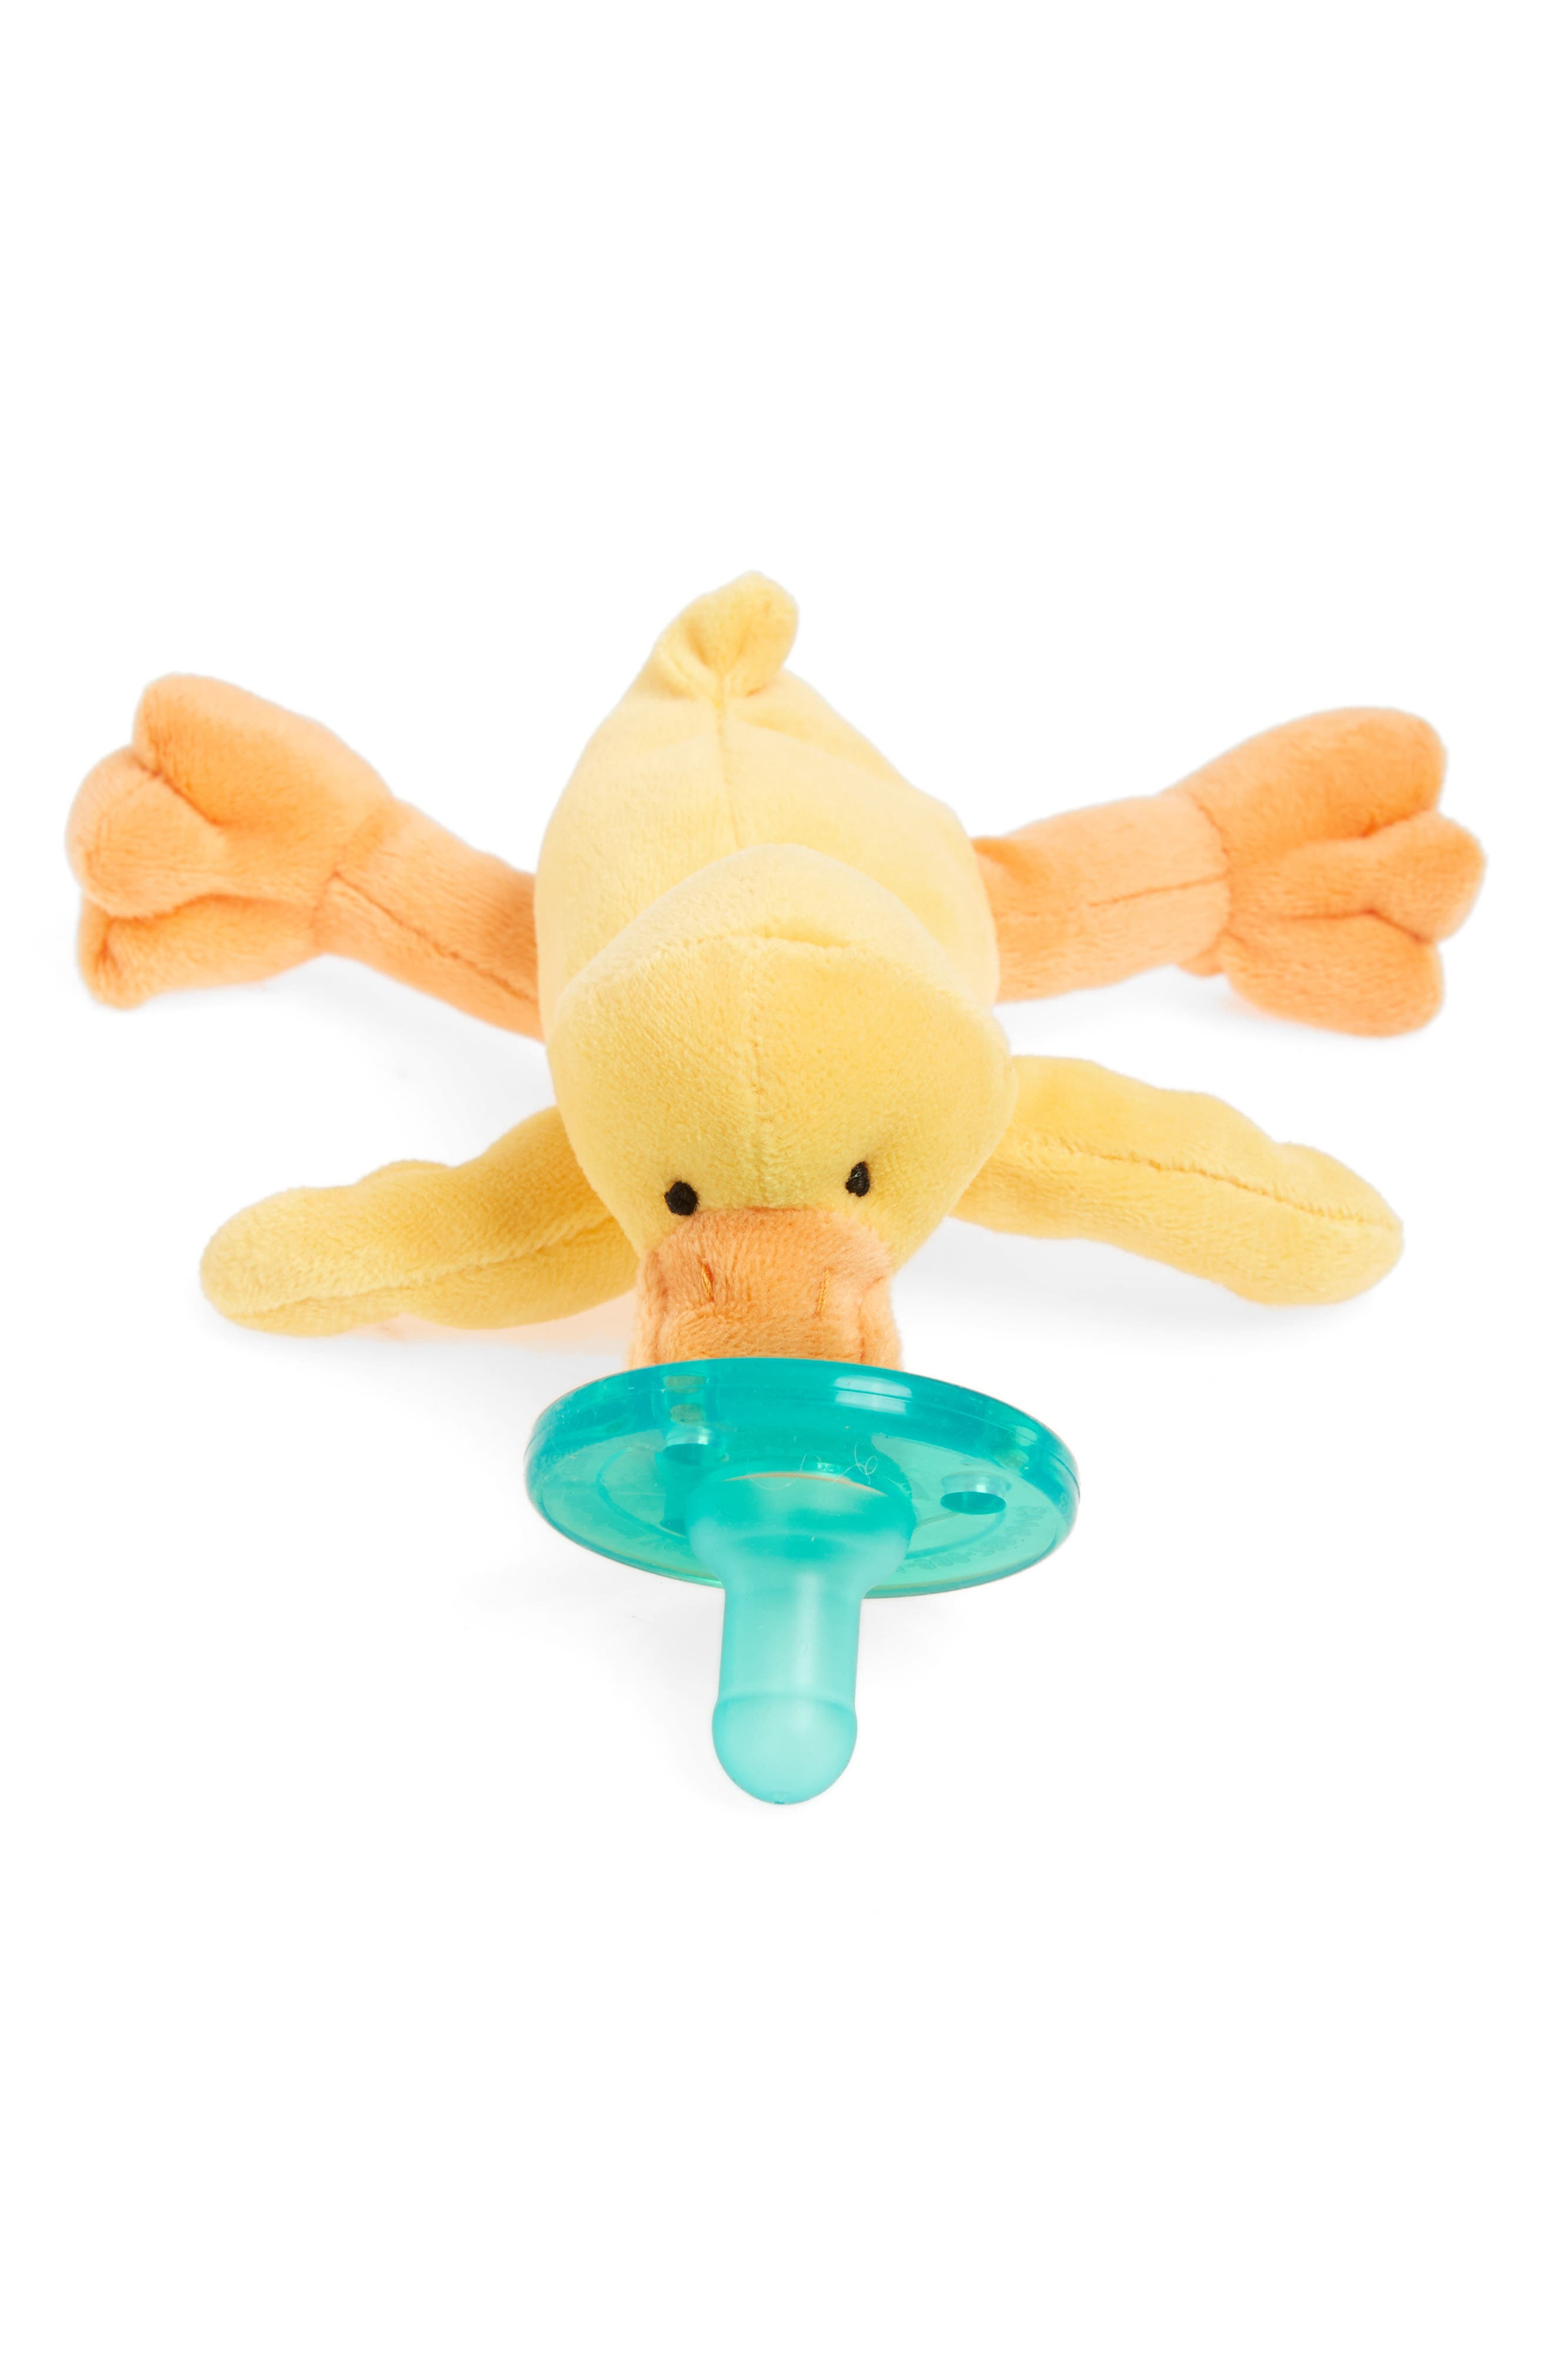 Baby Yellow Duck Pacifier Toy,                             Main thumbnail 1, color,                             Yellow